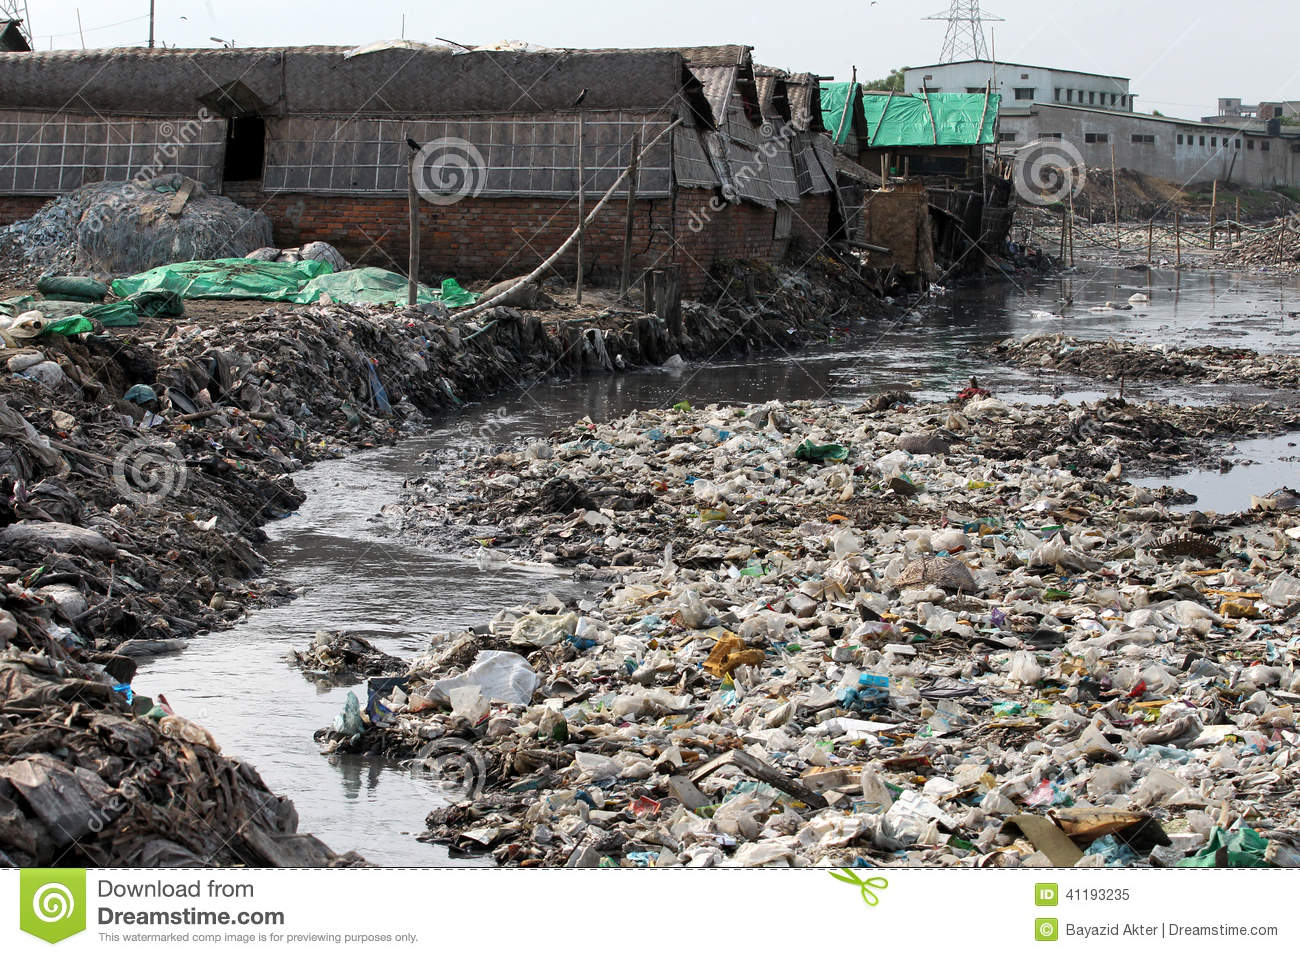 pollution in bangladesh Ship breaking activities in bangladesh could be a major source of pollution climate change would increase the frequency and severity of floods in bangladesh including trace/heavy metals, pah (oil) and a threat to marine life/biodiversity.